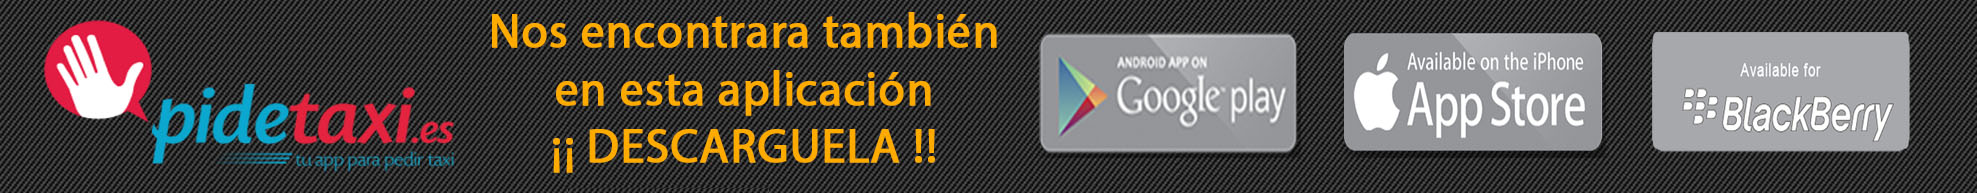 pidetaxi banner